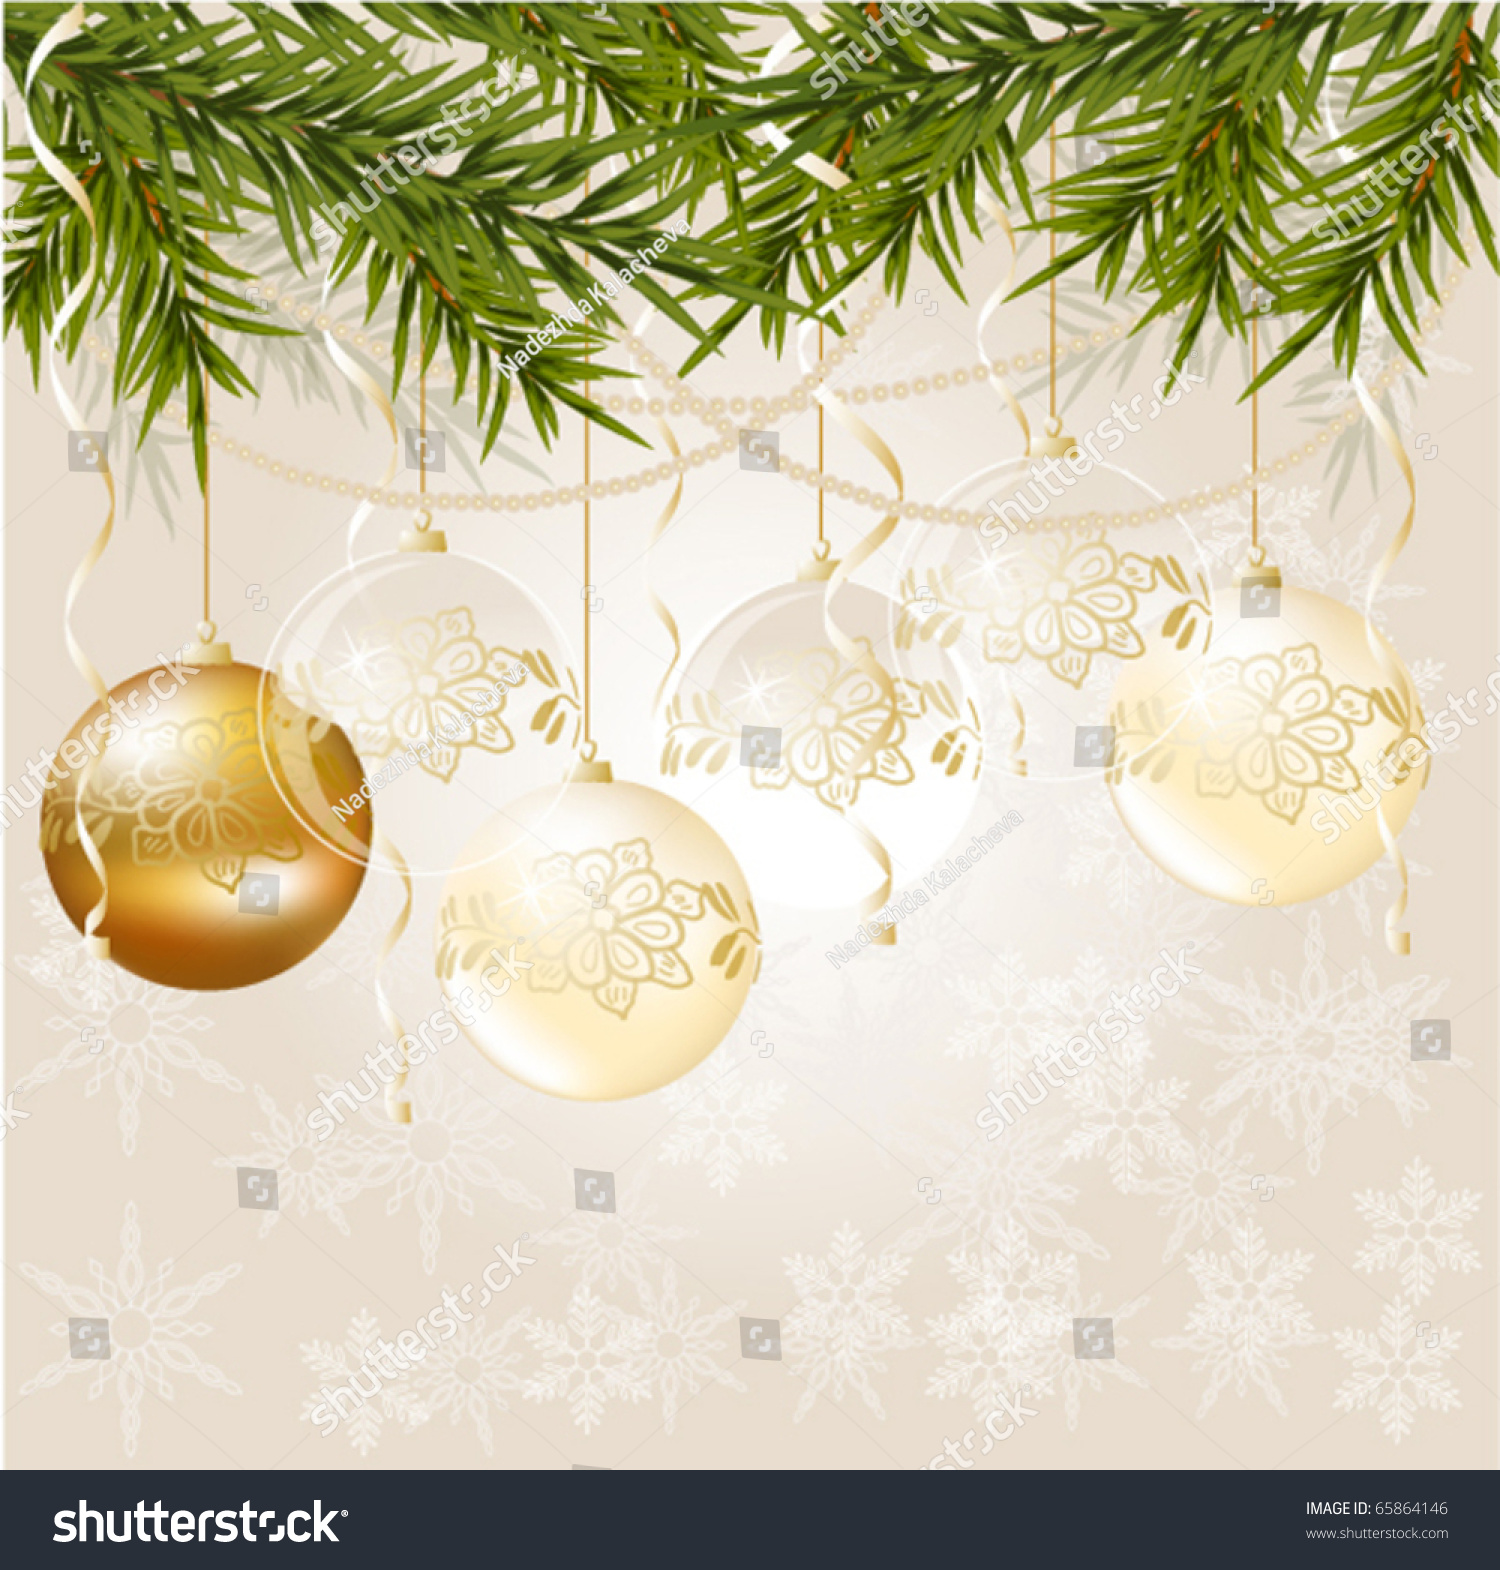 Gold and white christmas background